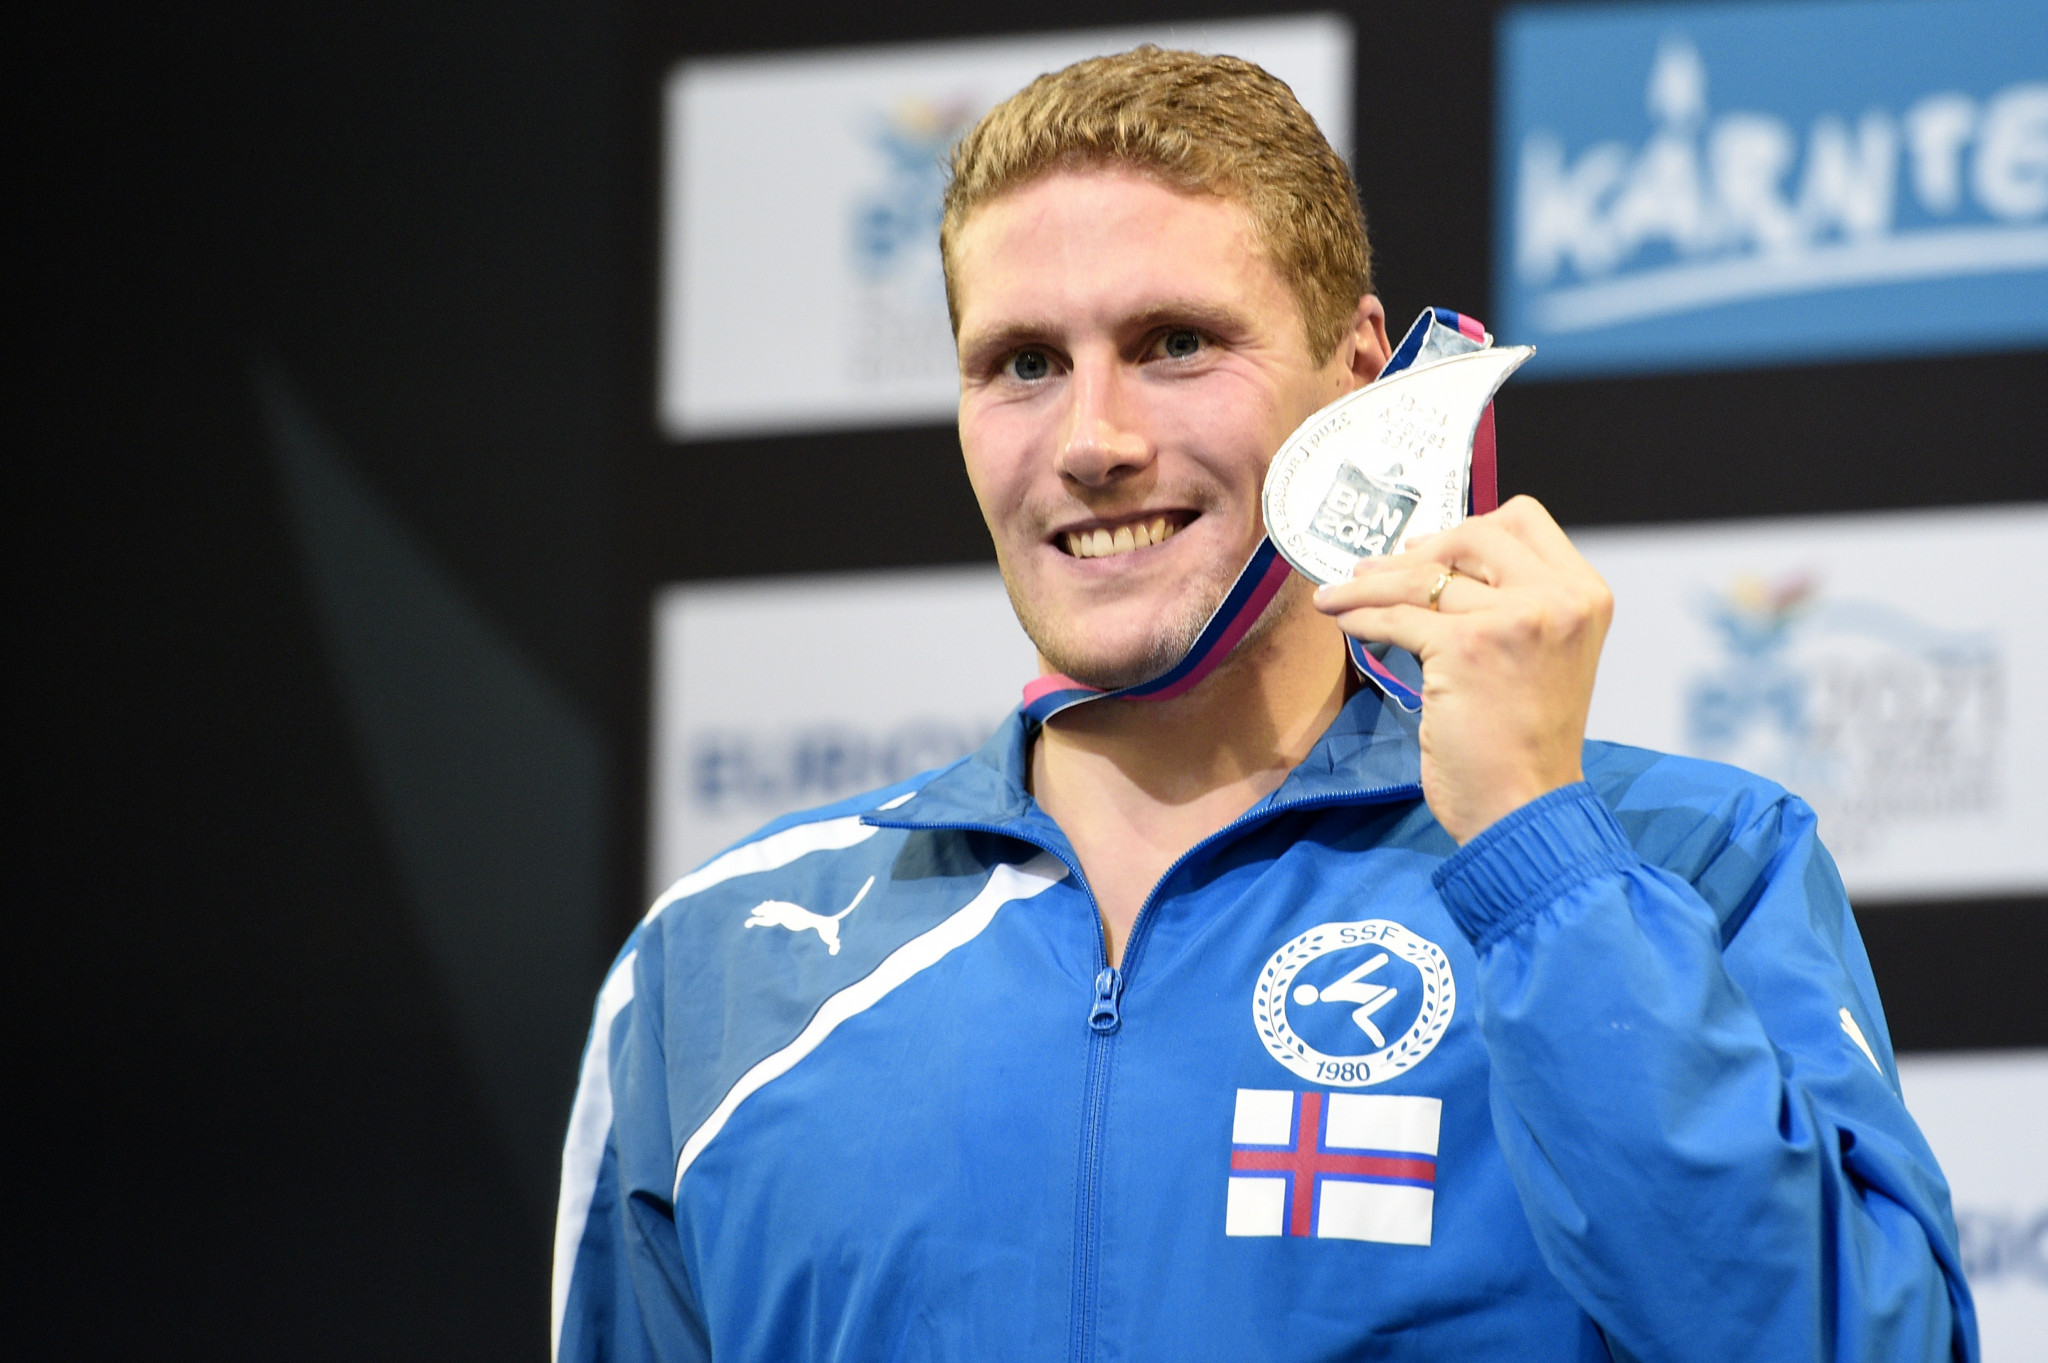 Swimmer Pál Joensen is one of the leading athletes from the Faroe Islands, but competed for Denmark at the Olympic Games ©Getty Images